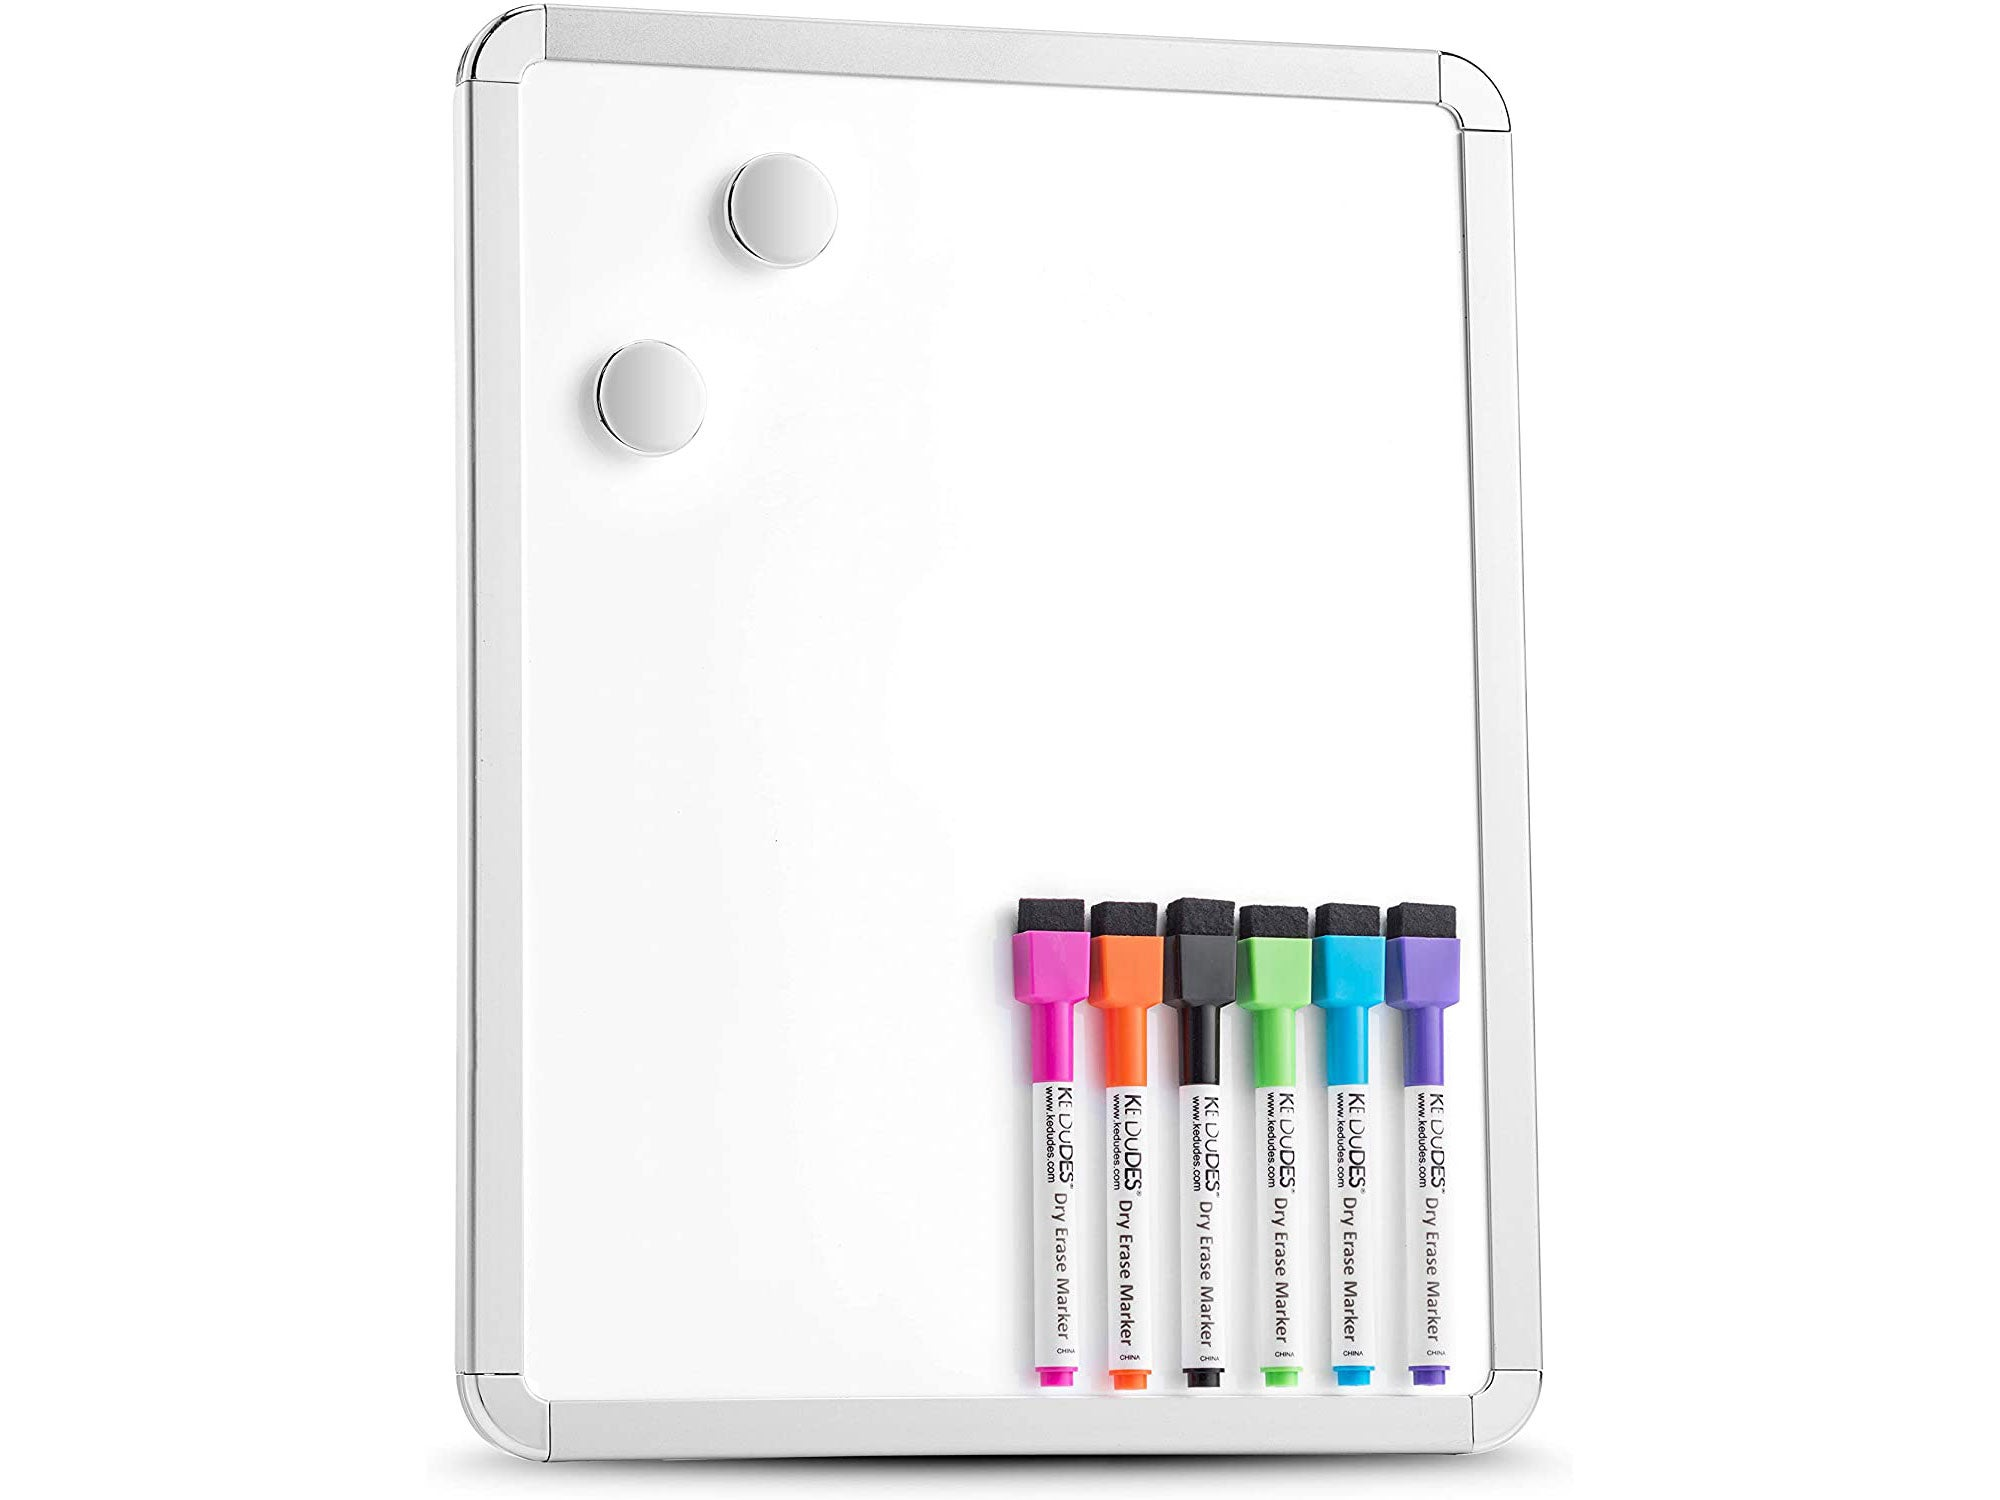 Magnetic 11′' x 14′' Small Dry Erase Board. Includes 6 Magnetic Dry Erase Markers, Assorted Colors.